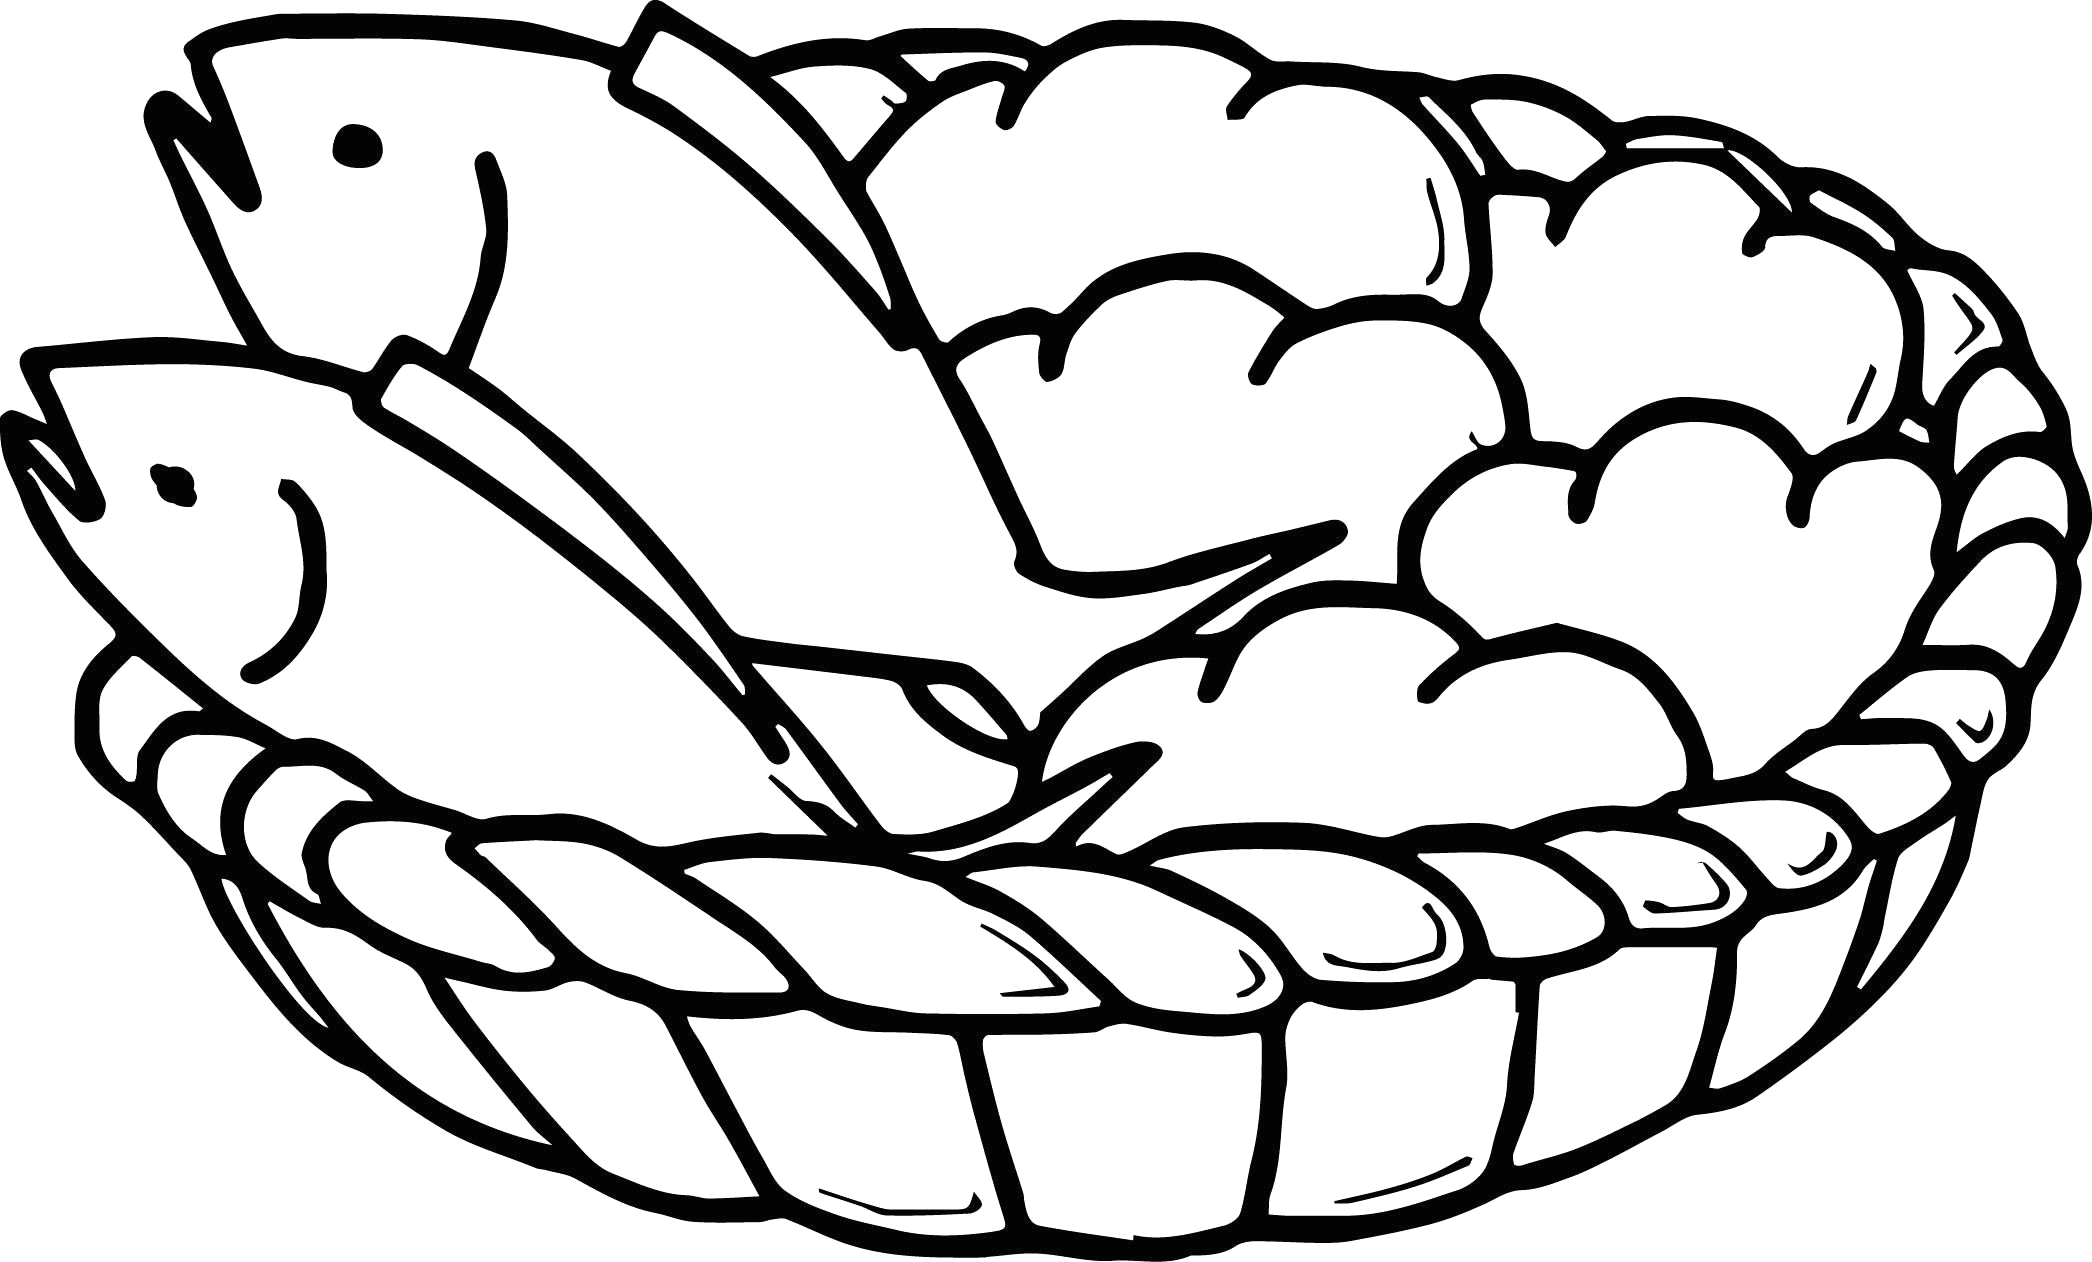 Two Fish and Five Loaves Of Bread Coloring Page Awesome 5 Loaves Bread and 2 Fish Coloring Page Loaves and